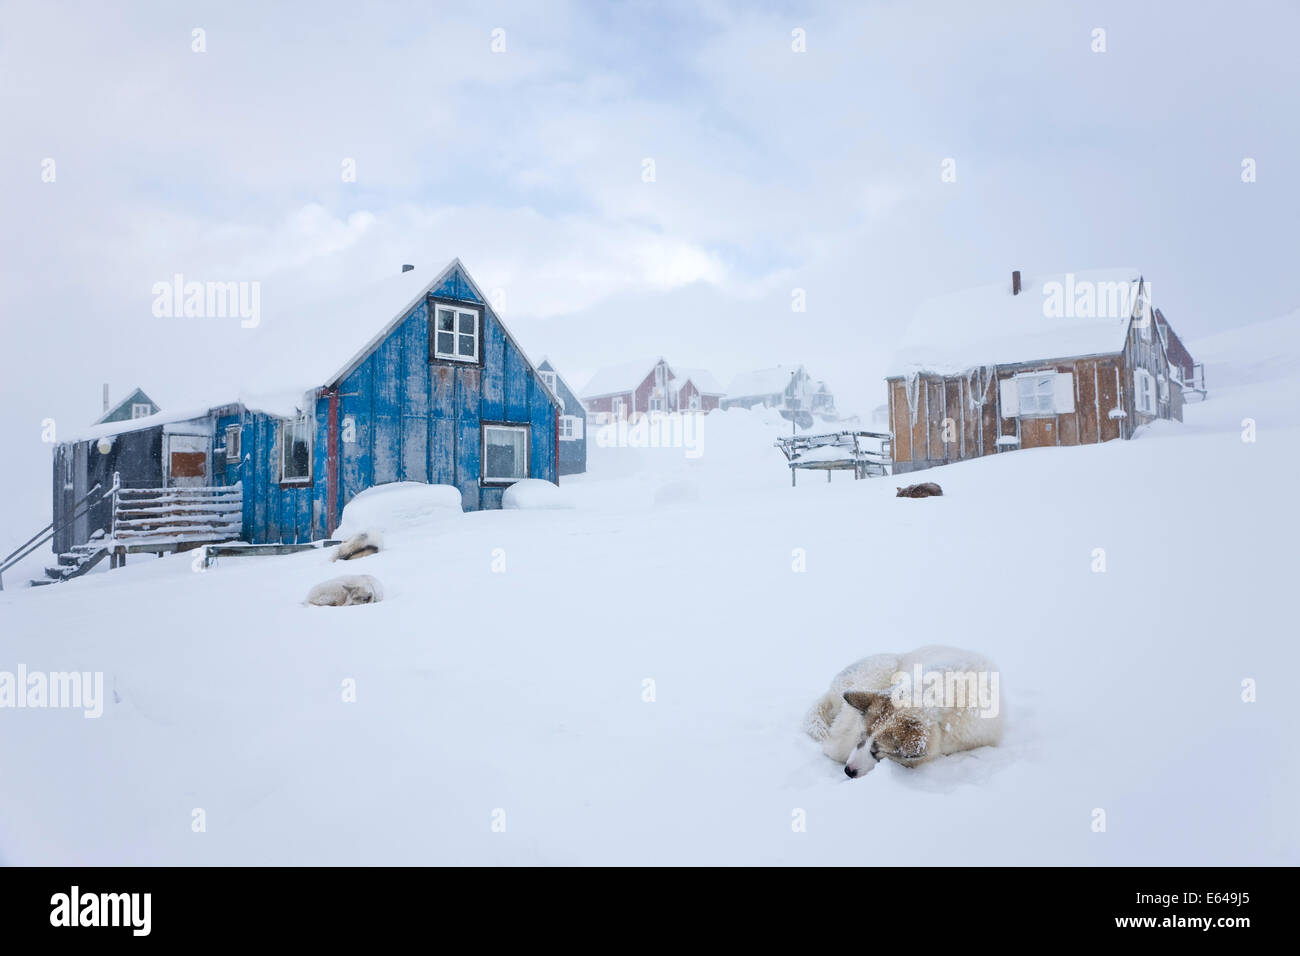 Husky in snow outside houses, Tasiilaq, Greenland - Stock Image